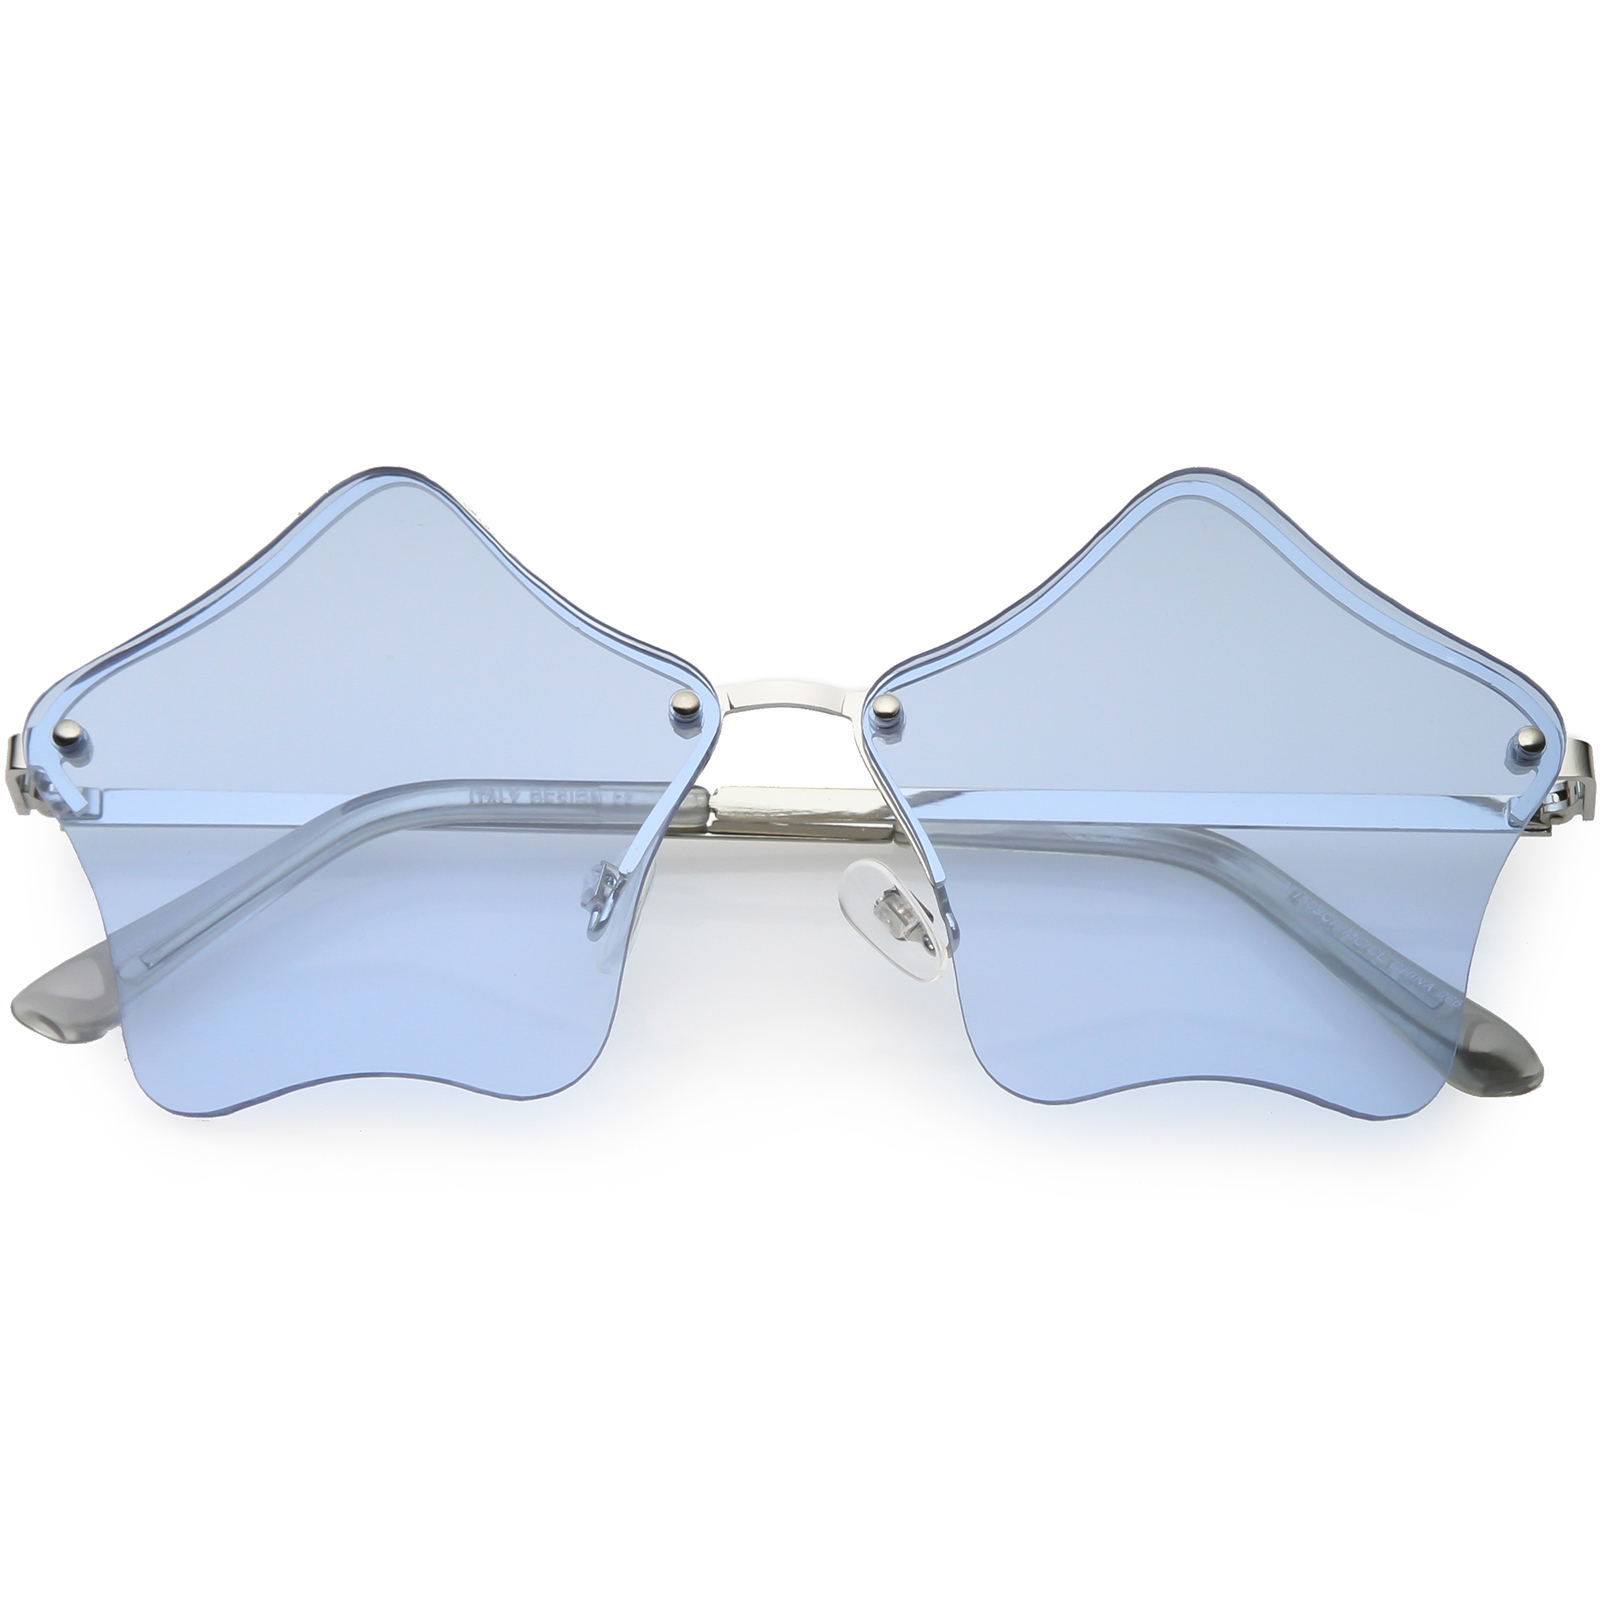 Star Shaped Rimless Sunglasses Metal Frame Color Tinted Lens 55mm (Silver / Blue)